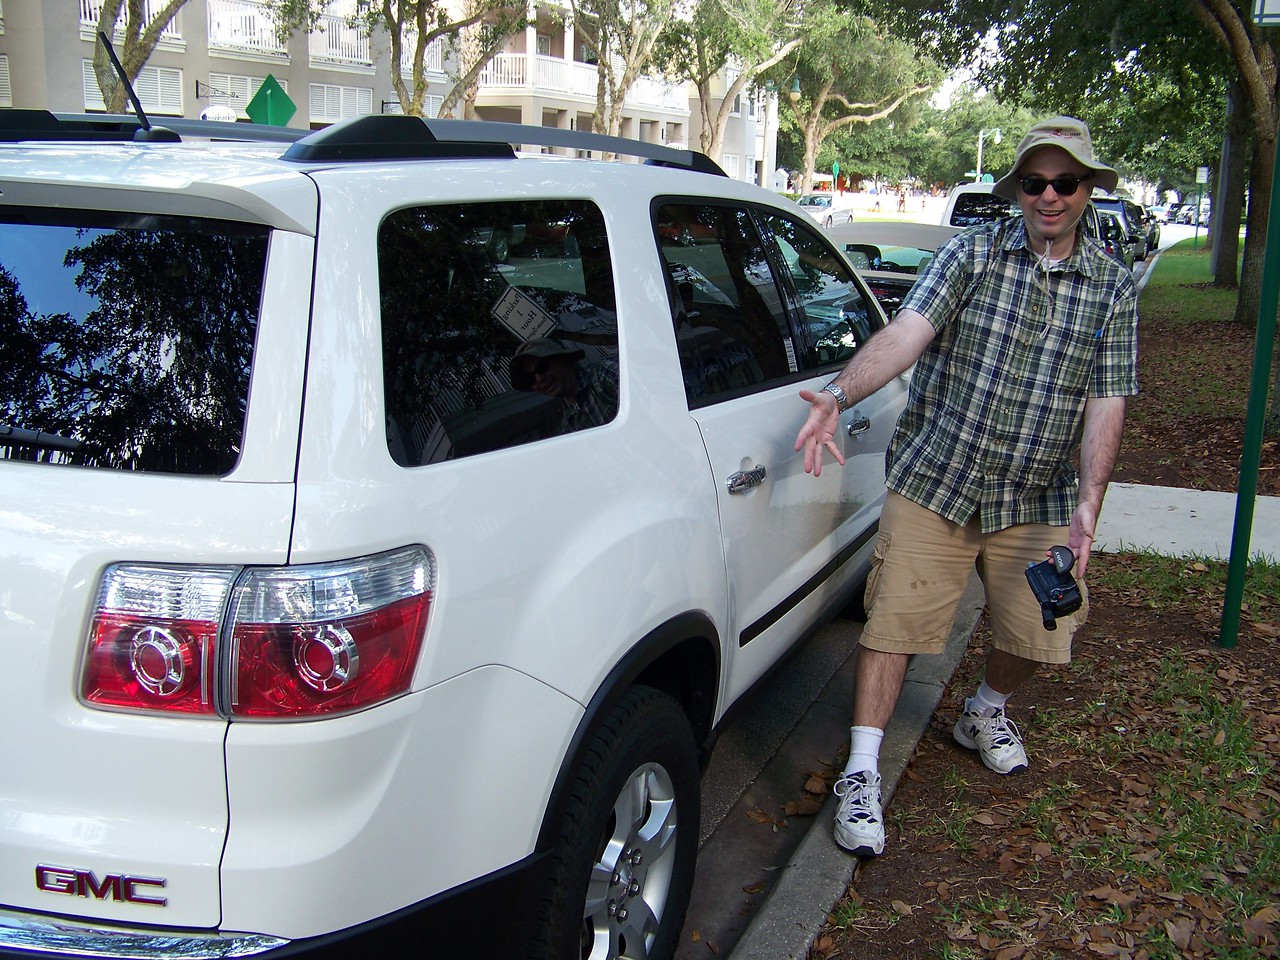 Pat shows off the fantastic parallel-parking job he did with the GMC Acadia we rented, despite the tight parking space in Celebration's town center.<br /> [Celebration, Florida]